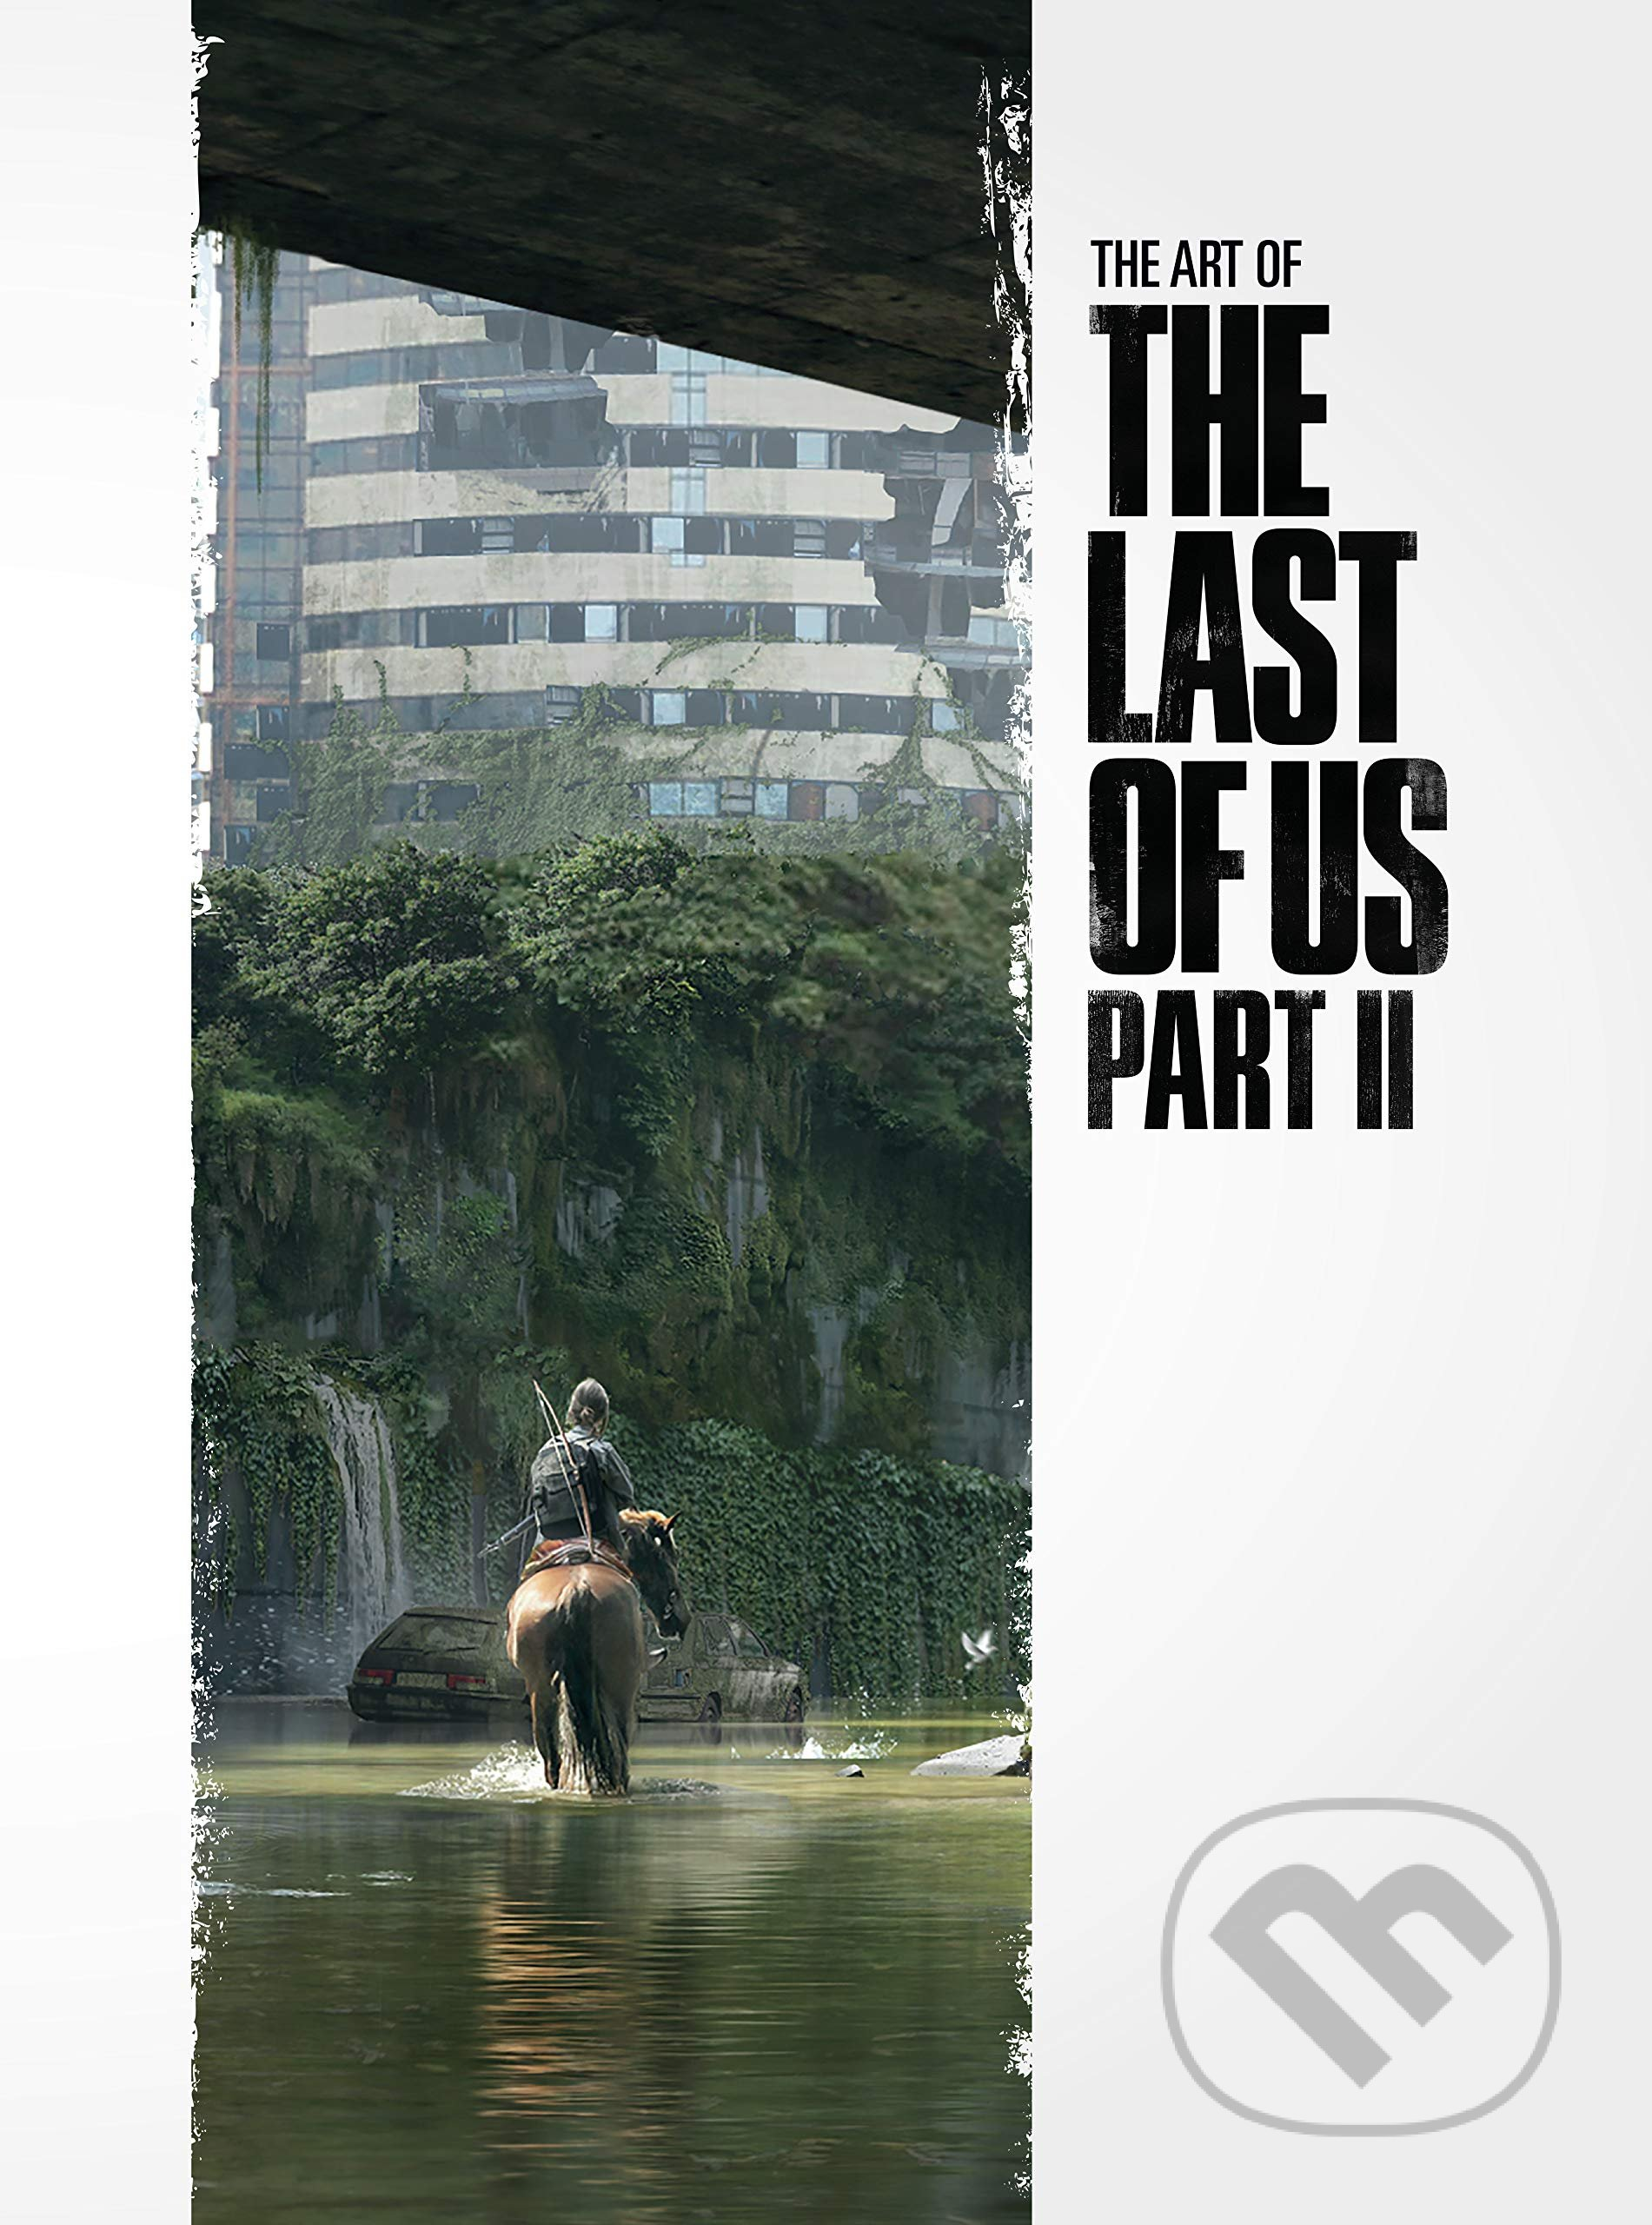 The Art of the Last of Us - Part II - Naughty Dog